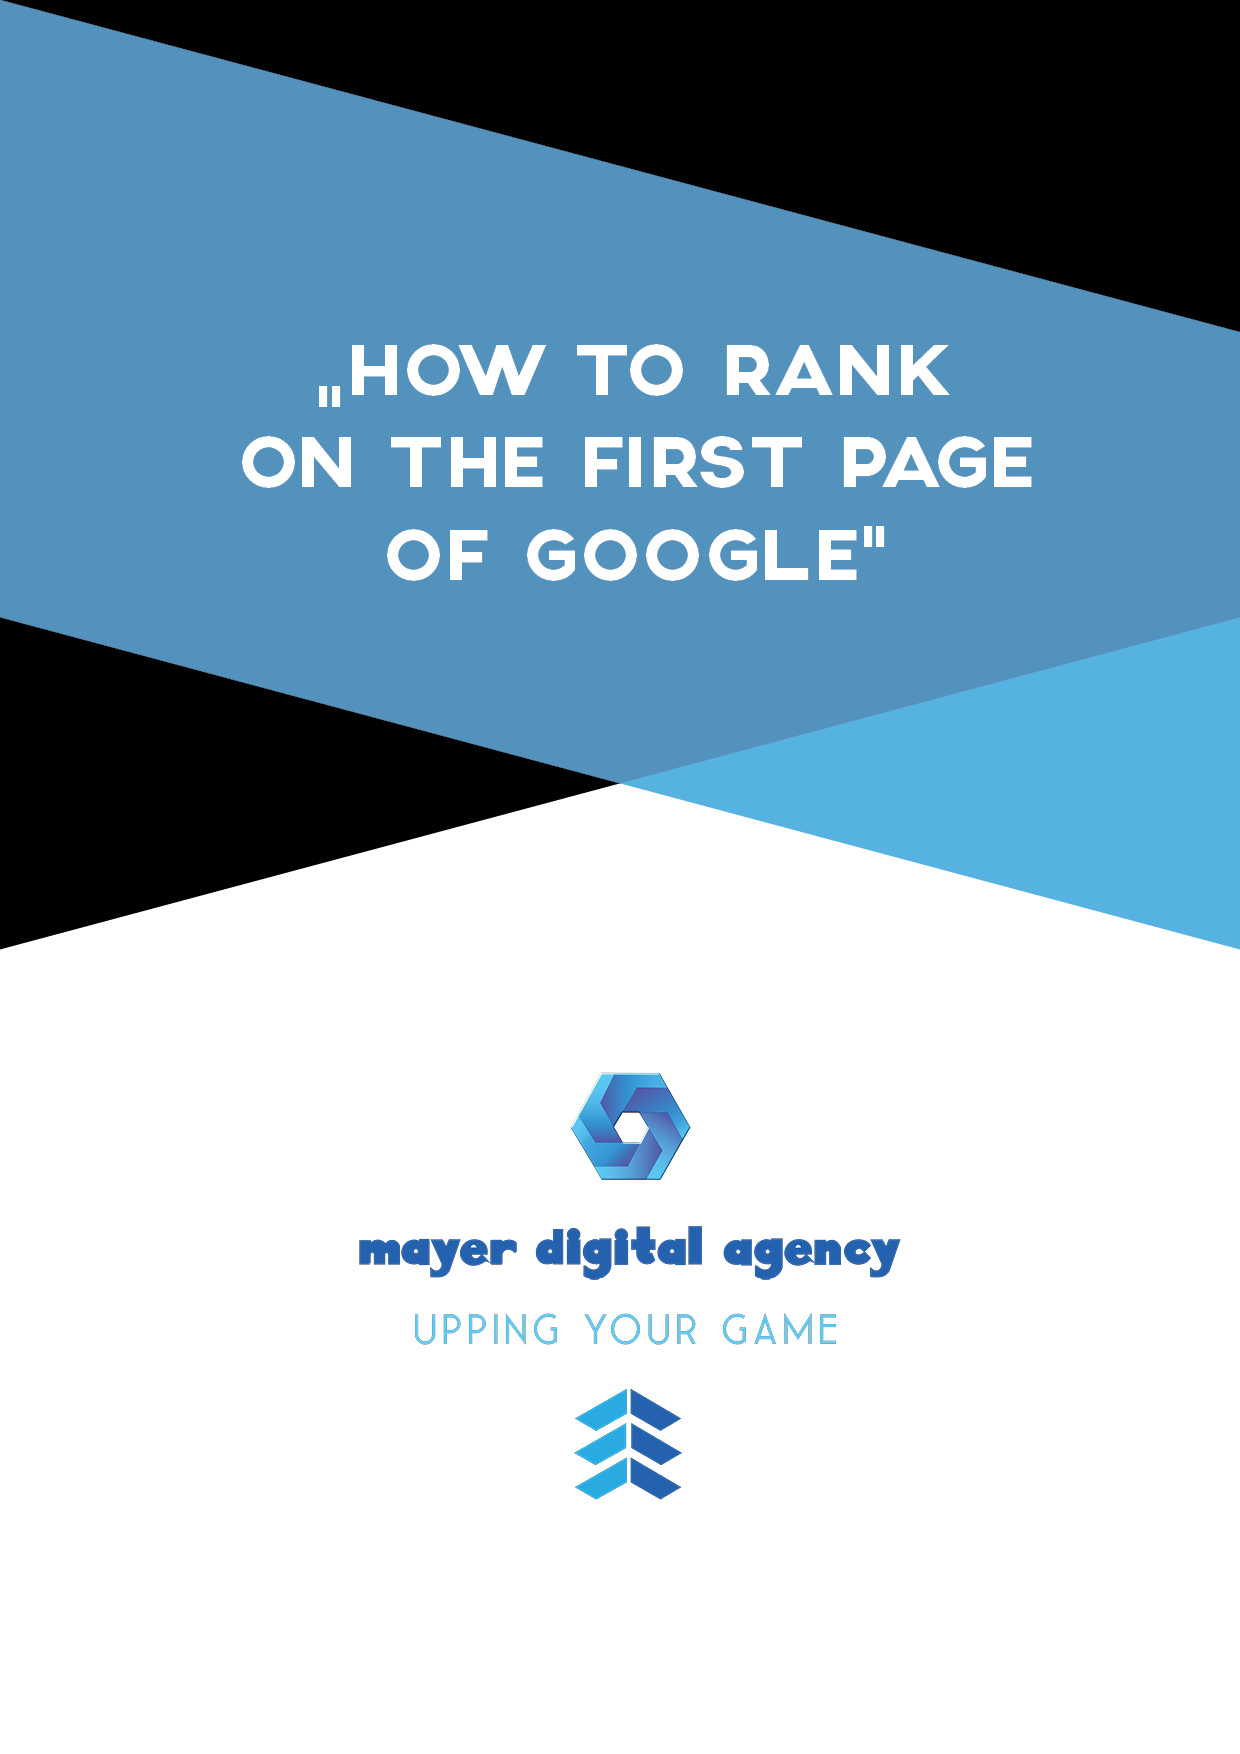 How To Get On The First Page Of Google - Free Guide